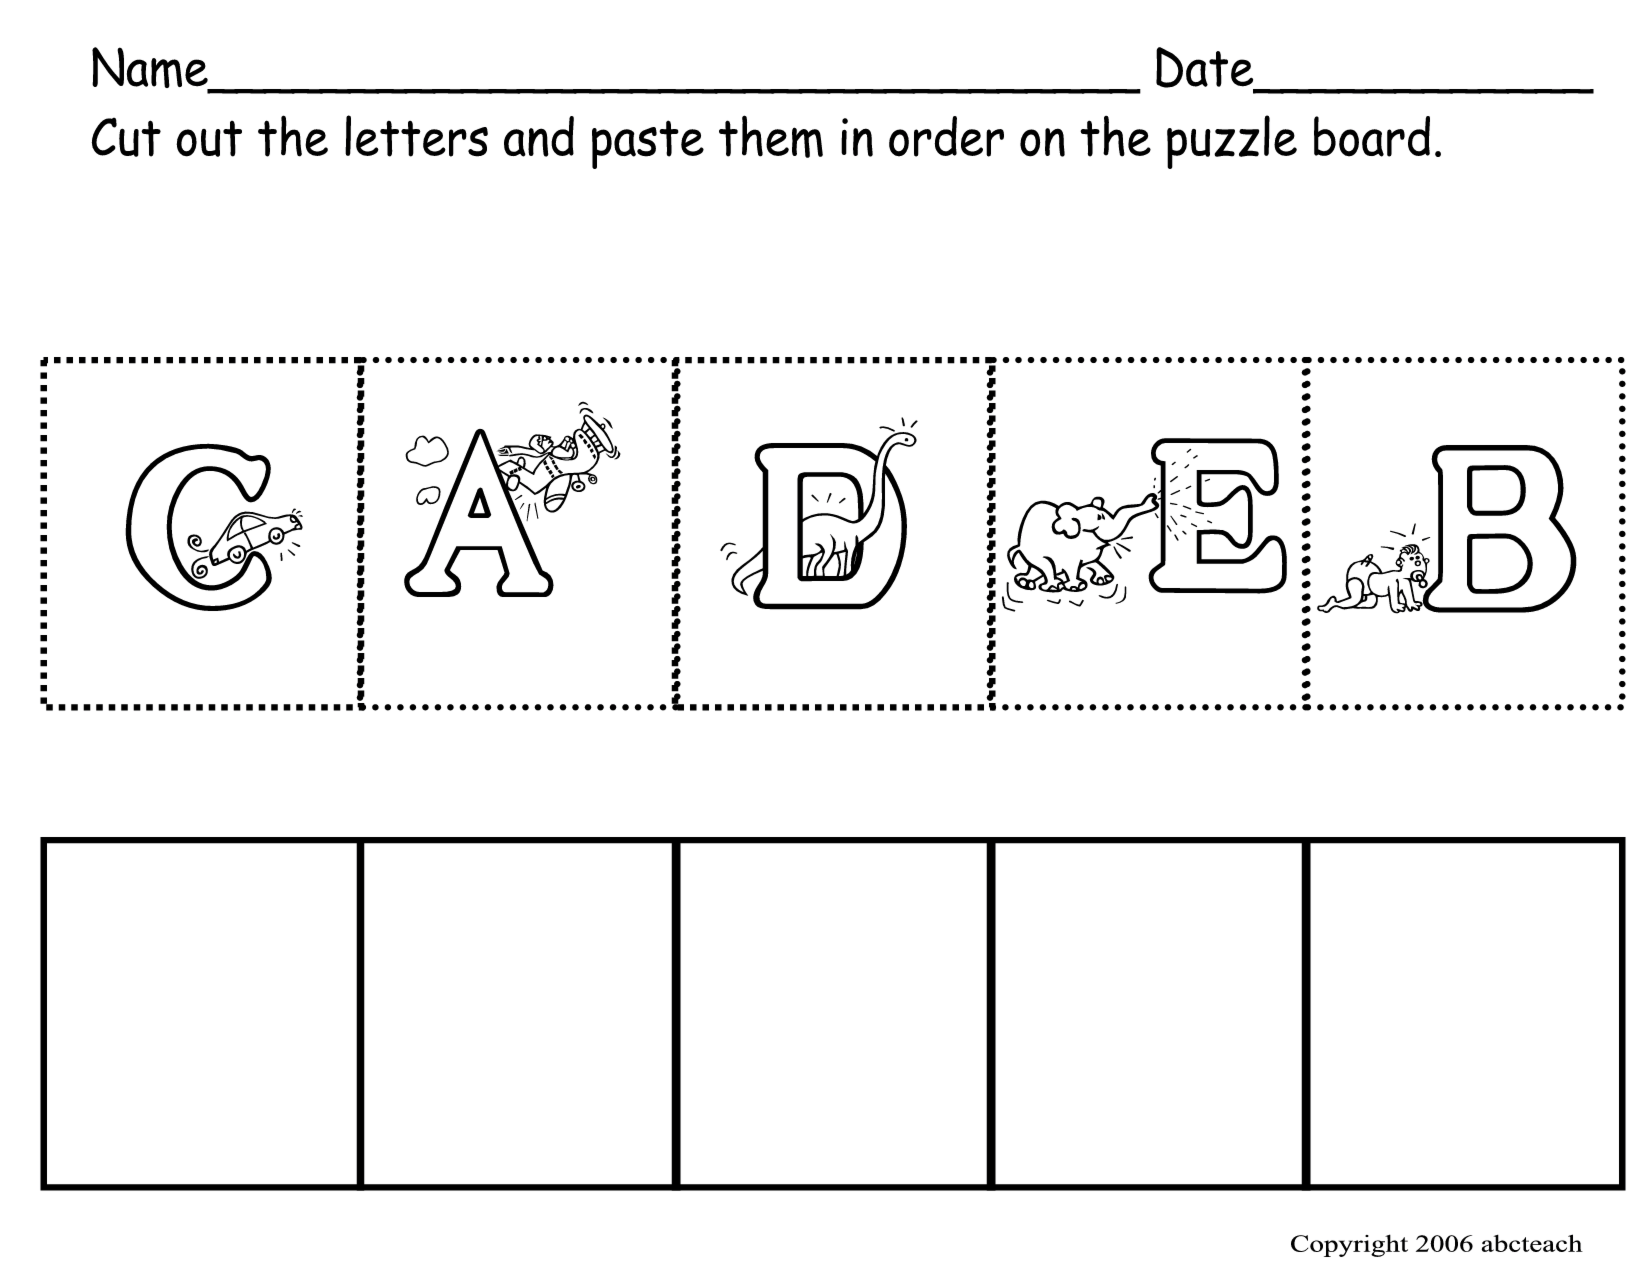 Worksheets Alphabet Worksheets Pdf preschool abc worksheets kiduls printable letters printable